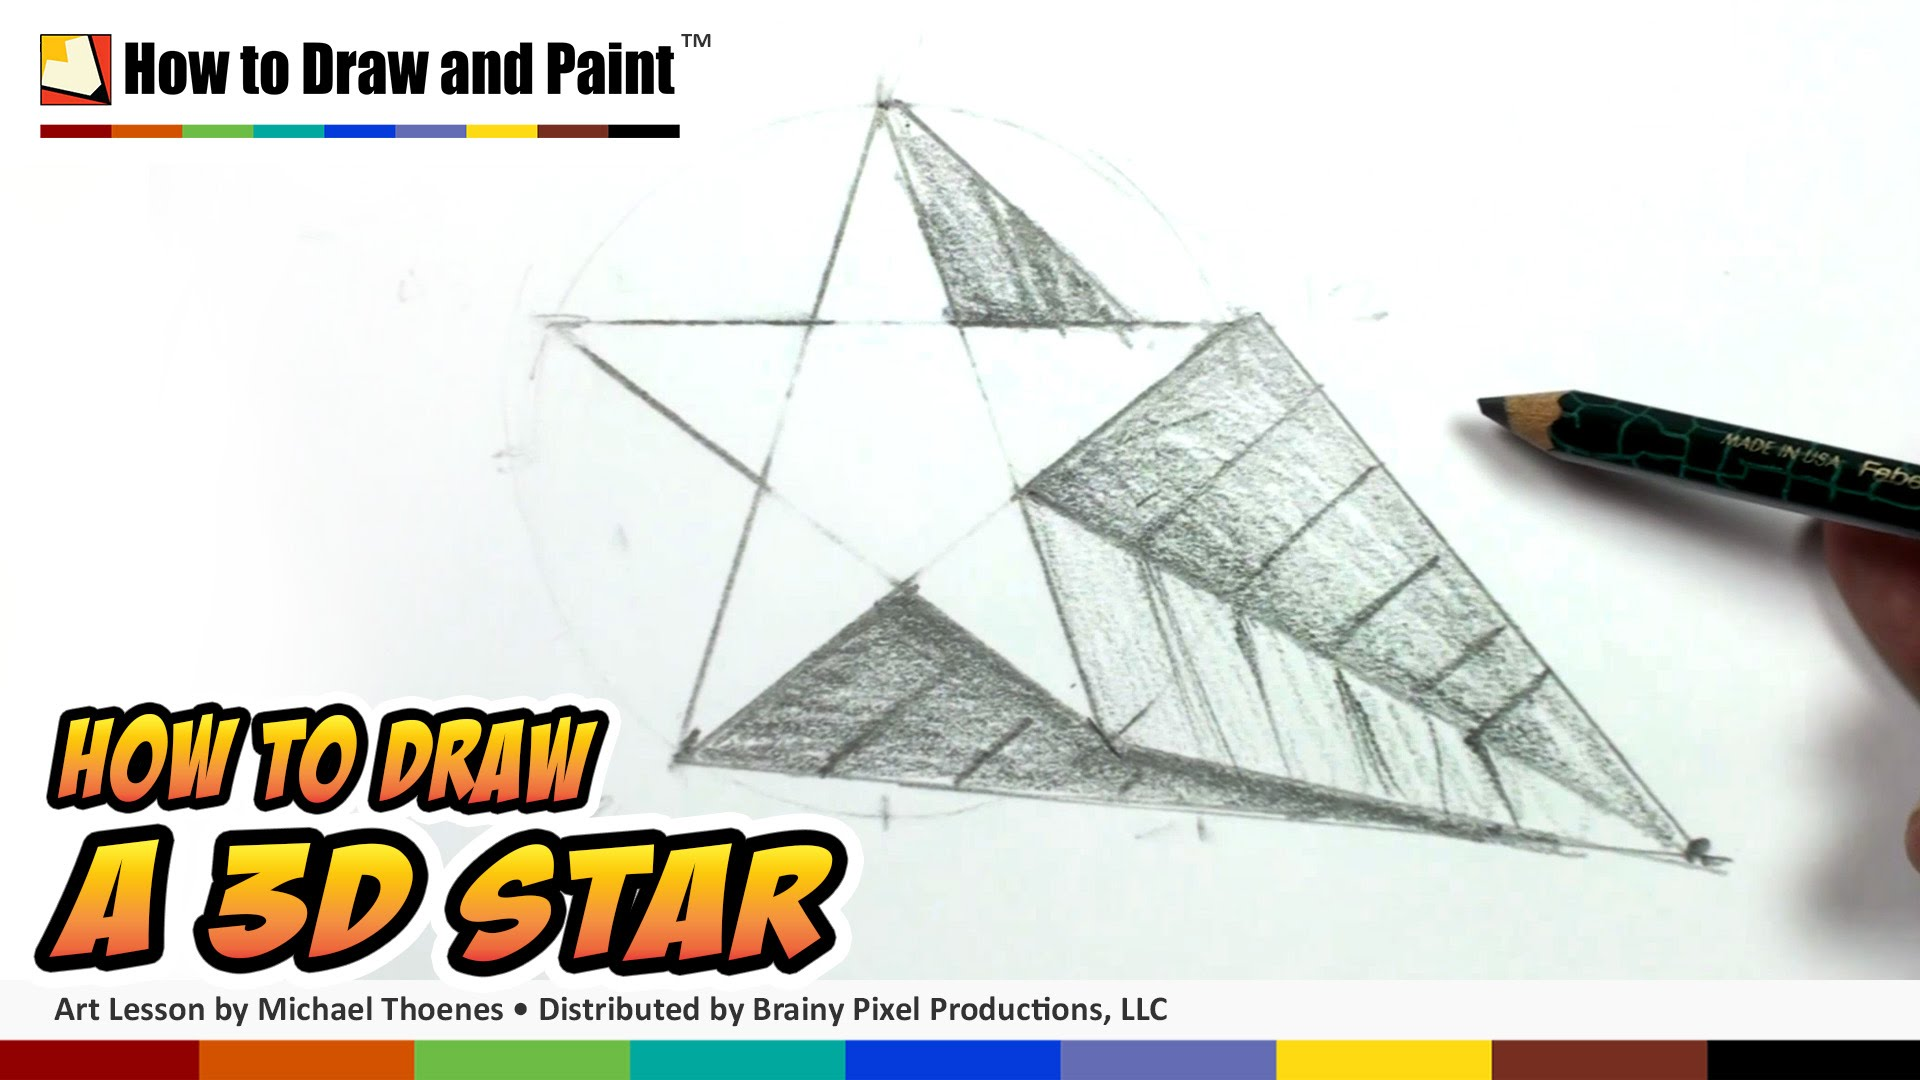 Drawn star two  to a One a